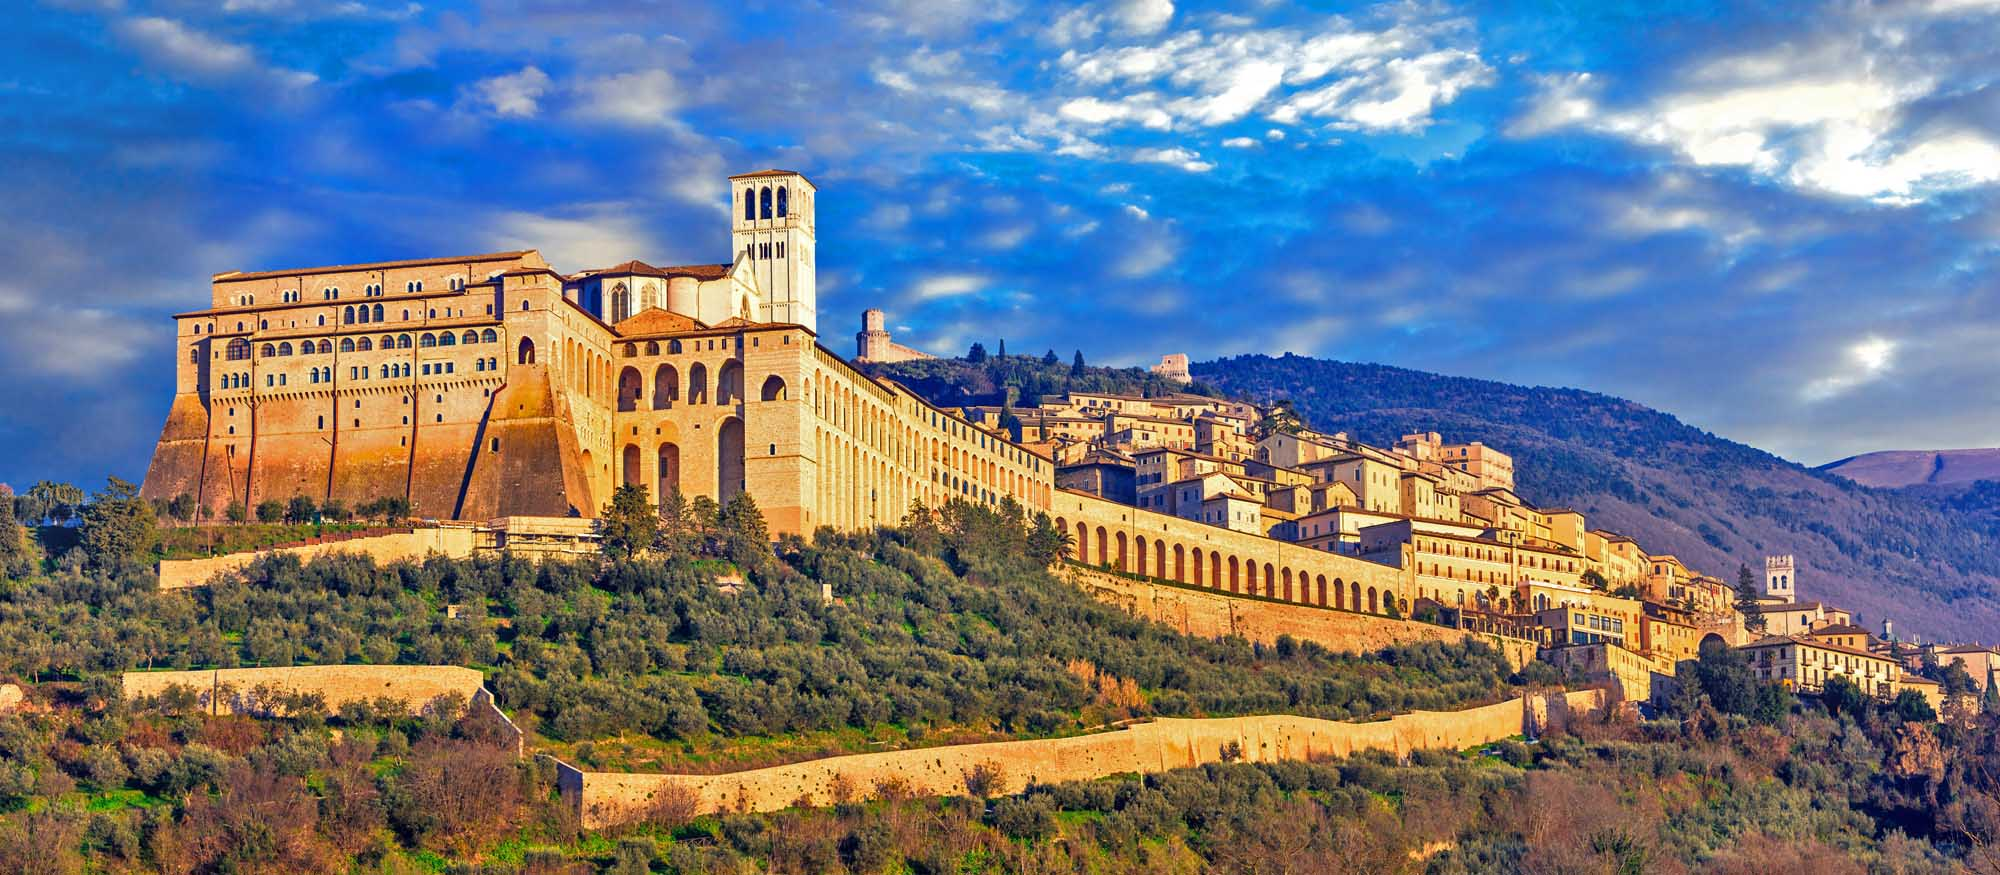 Impressive medieval Assisi town. Photo: Shutterstock